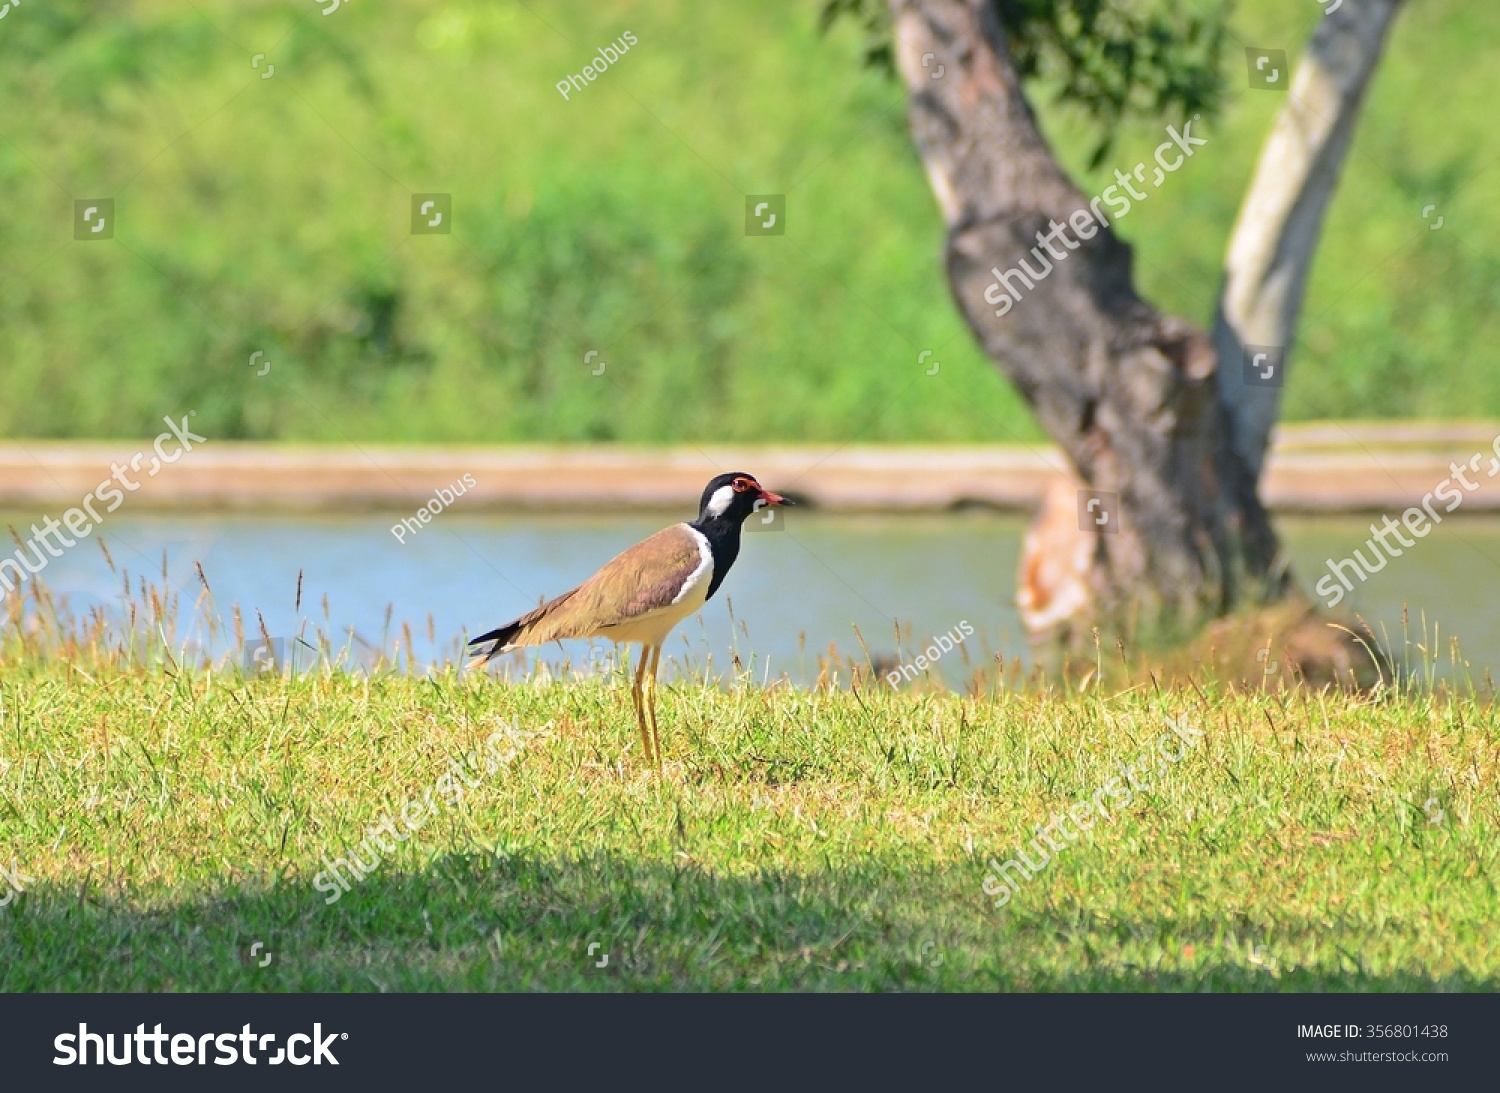 Red-wattled Lapwing bird in park